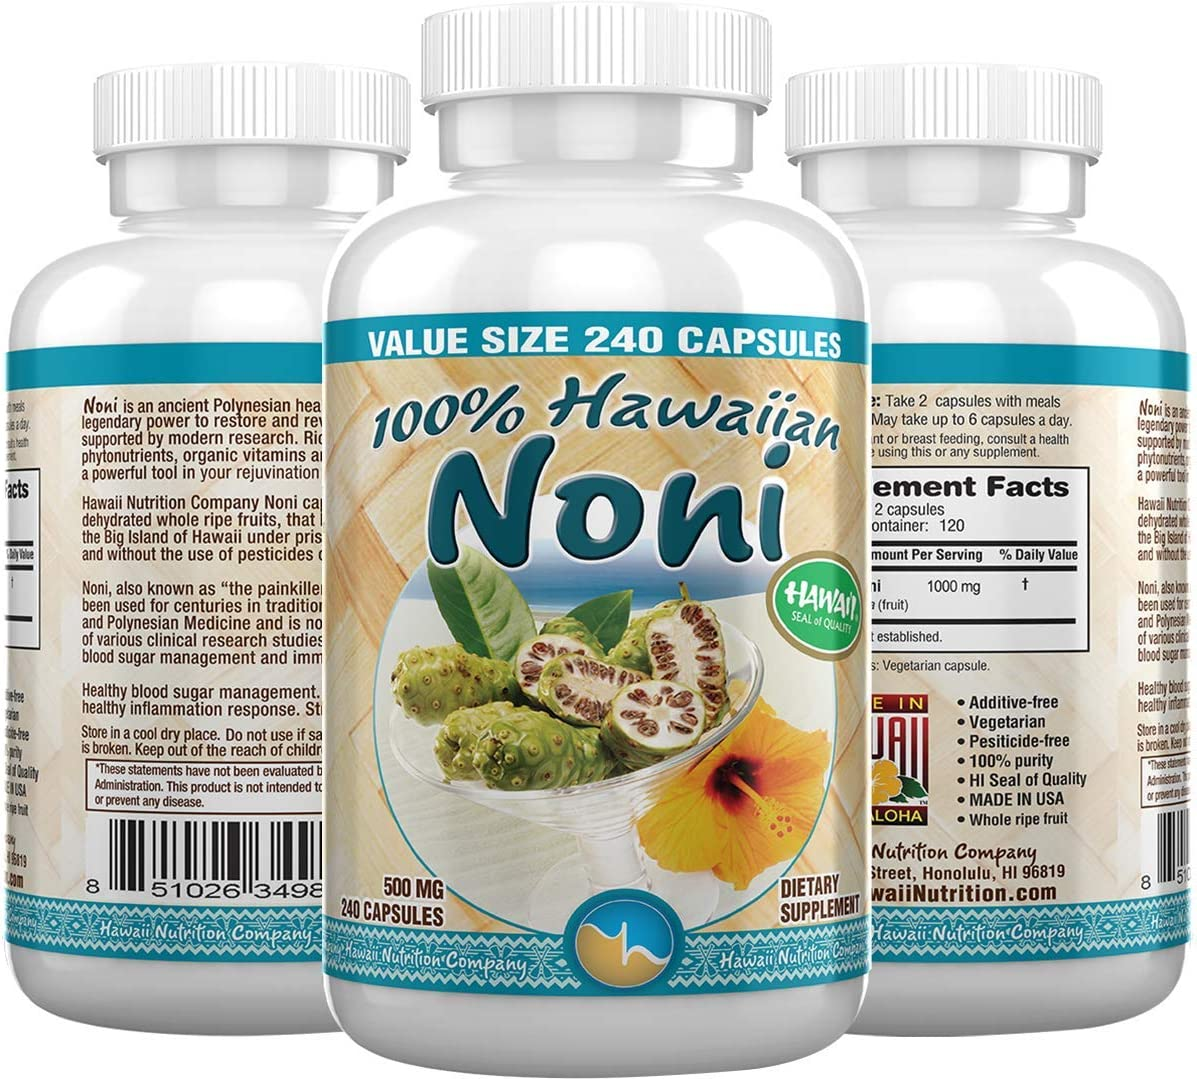 Hawaii Nutrition Company – Noni – 100 Grade A Noni Fruit Capsule – 240 Capsules – Boost Your Immune System, Manage Muscle Joint Pain, Improve Digestion